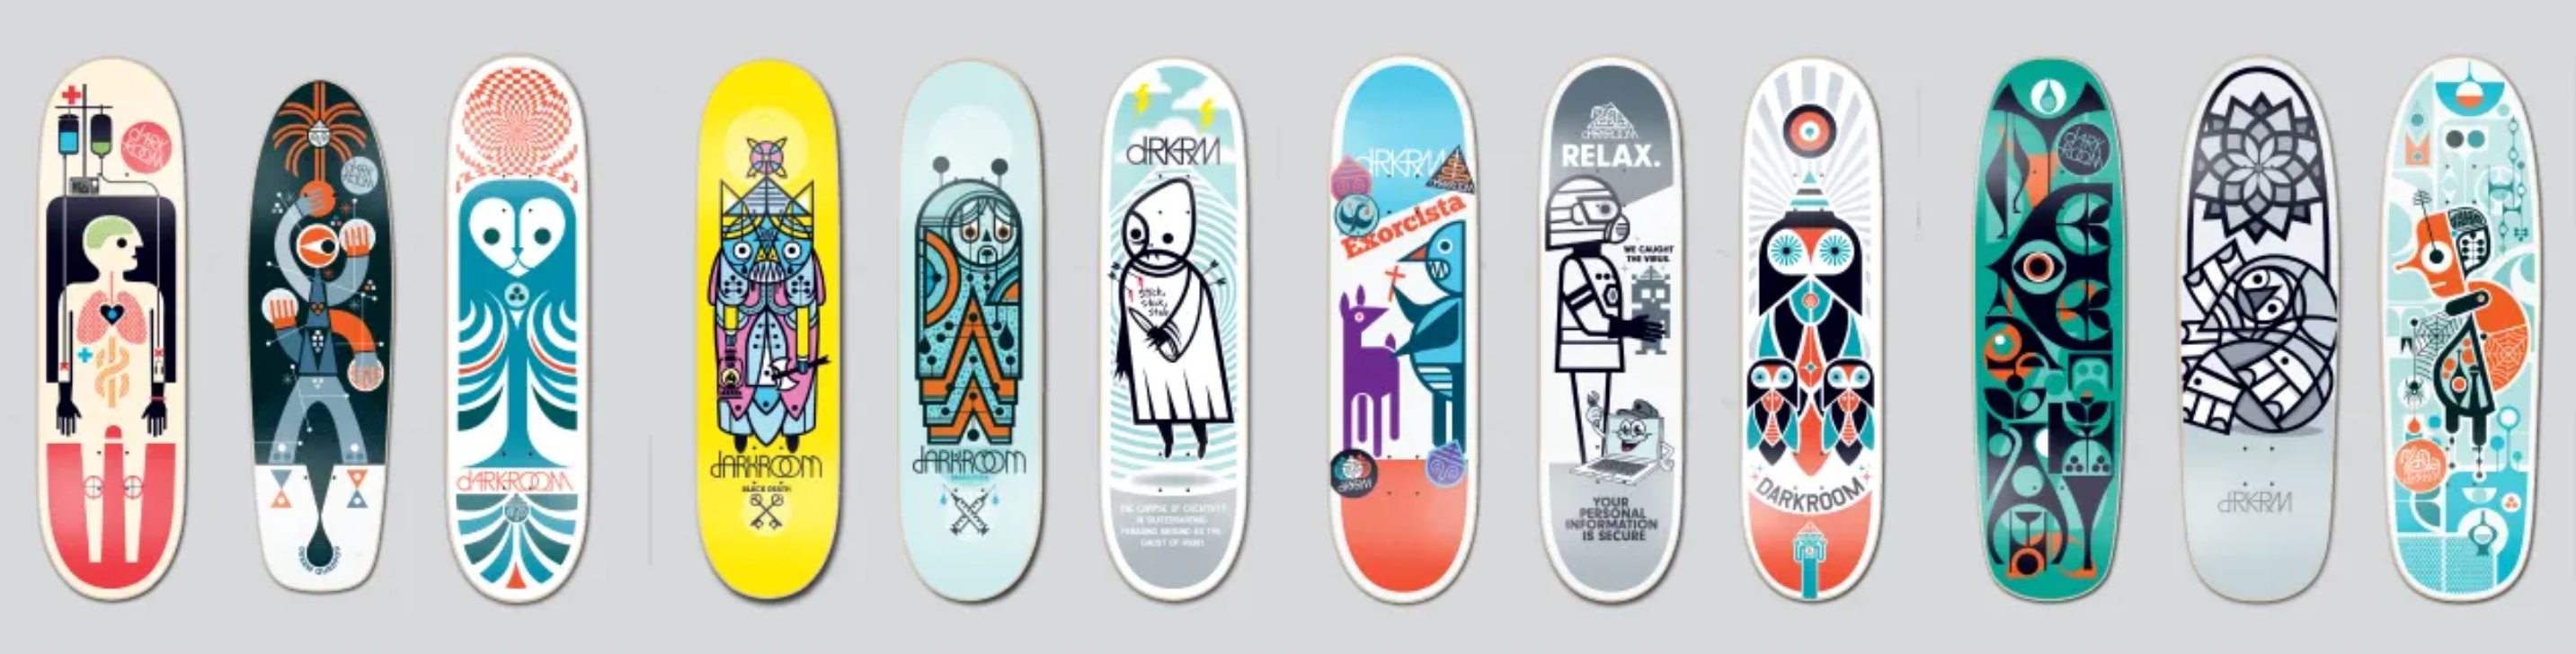 Don Pendleton skateboard decks